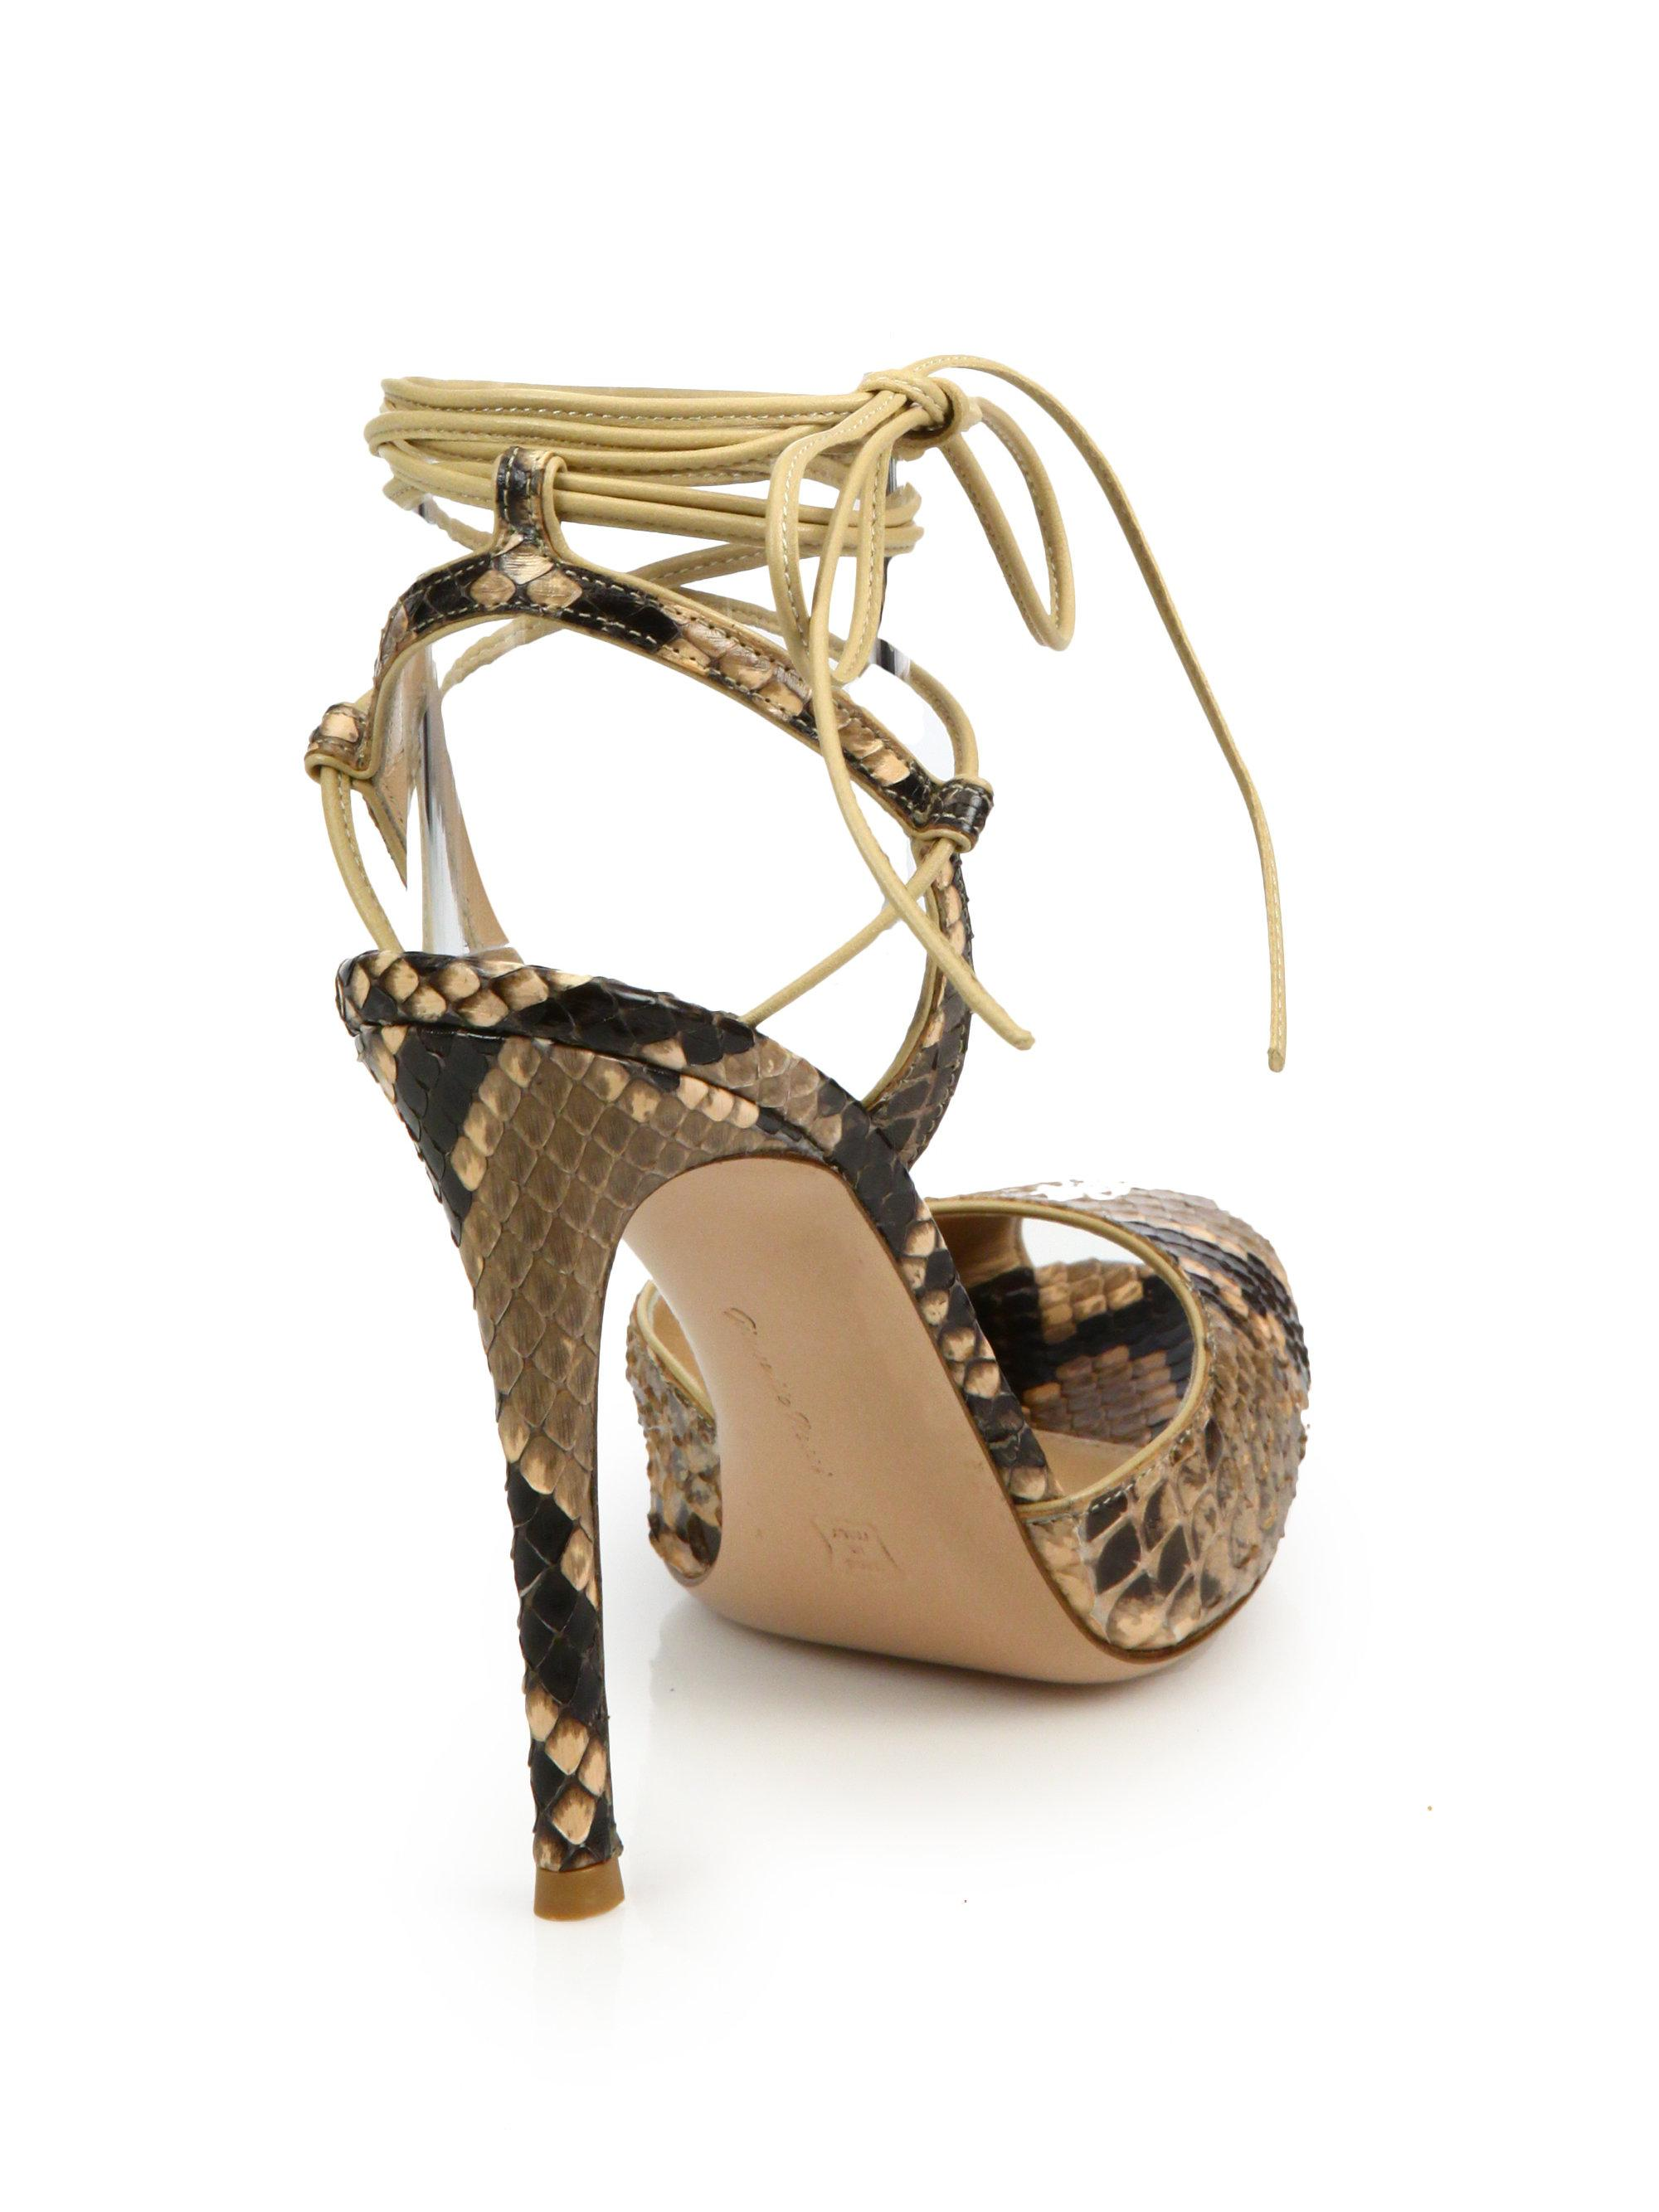 Gianvito Rossi Python-Embossed Leather Peep Toe Ankle-Wrap Sandals 0OuG5YFz